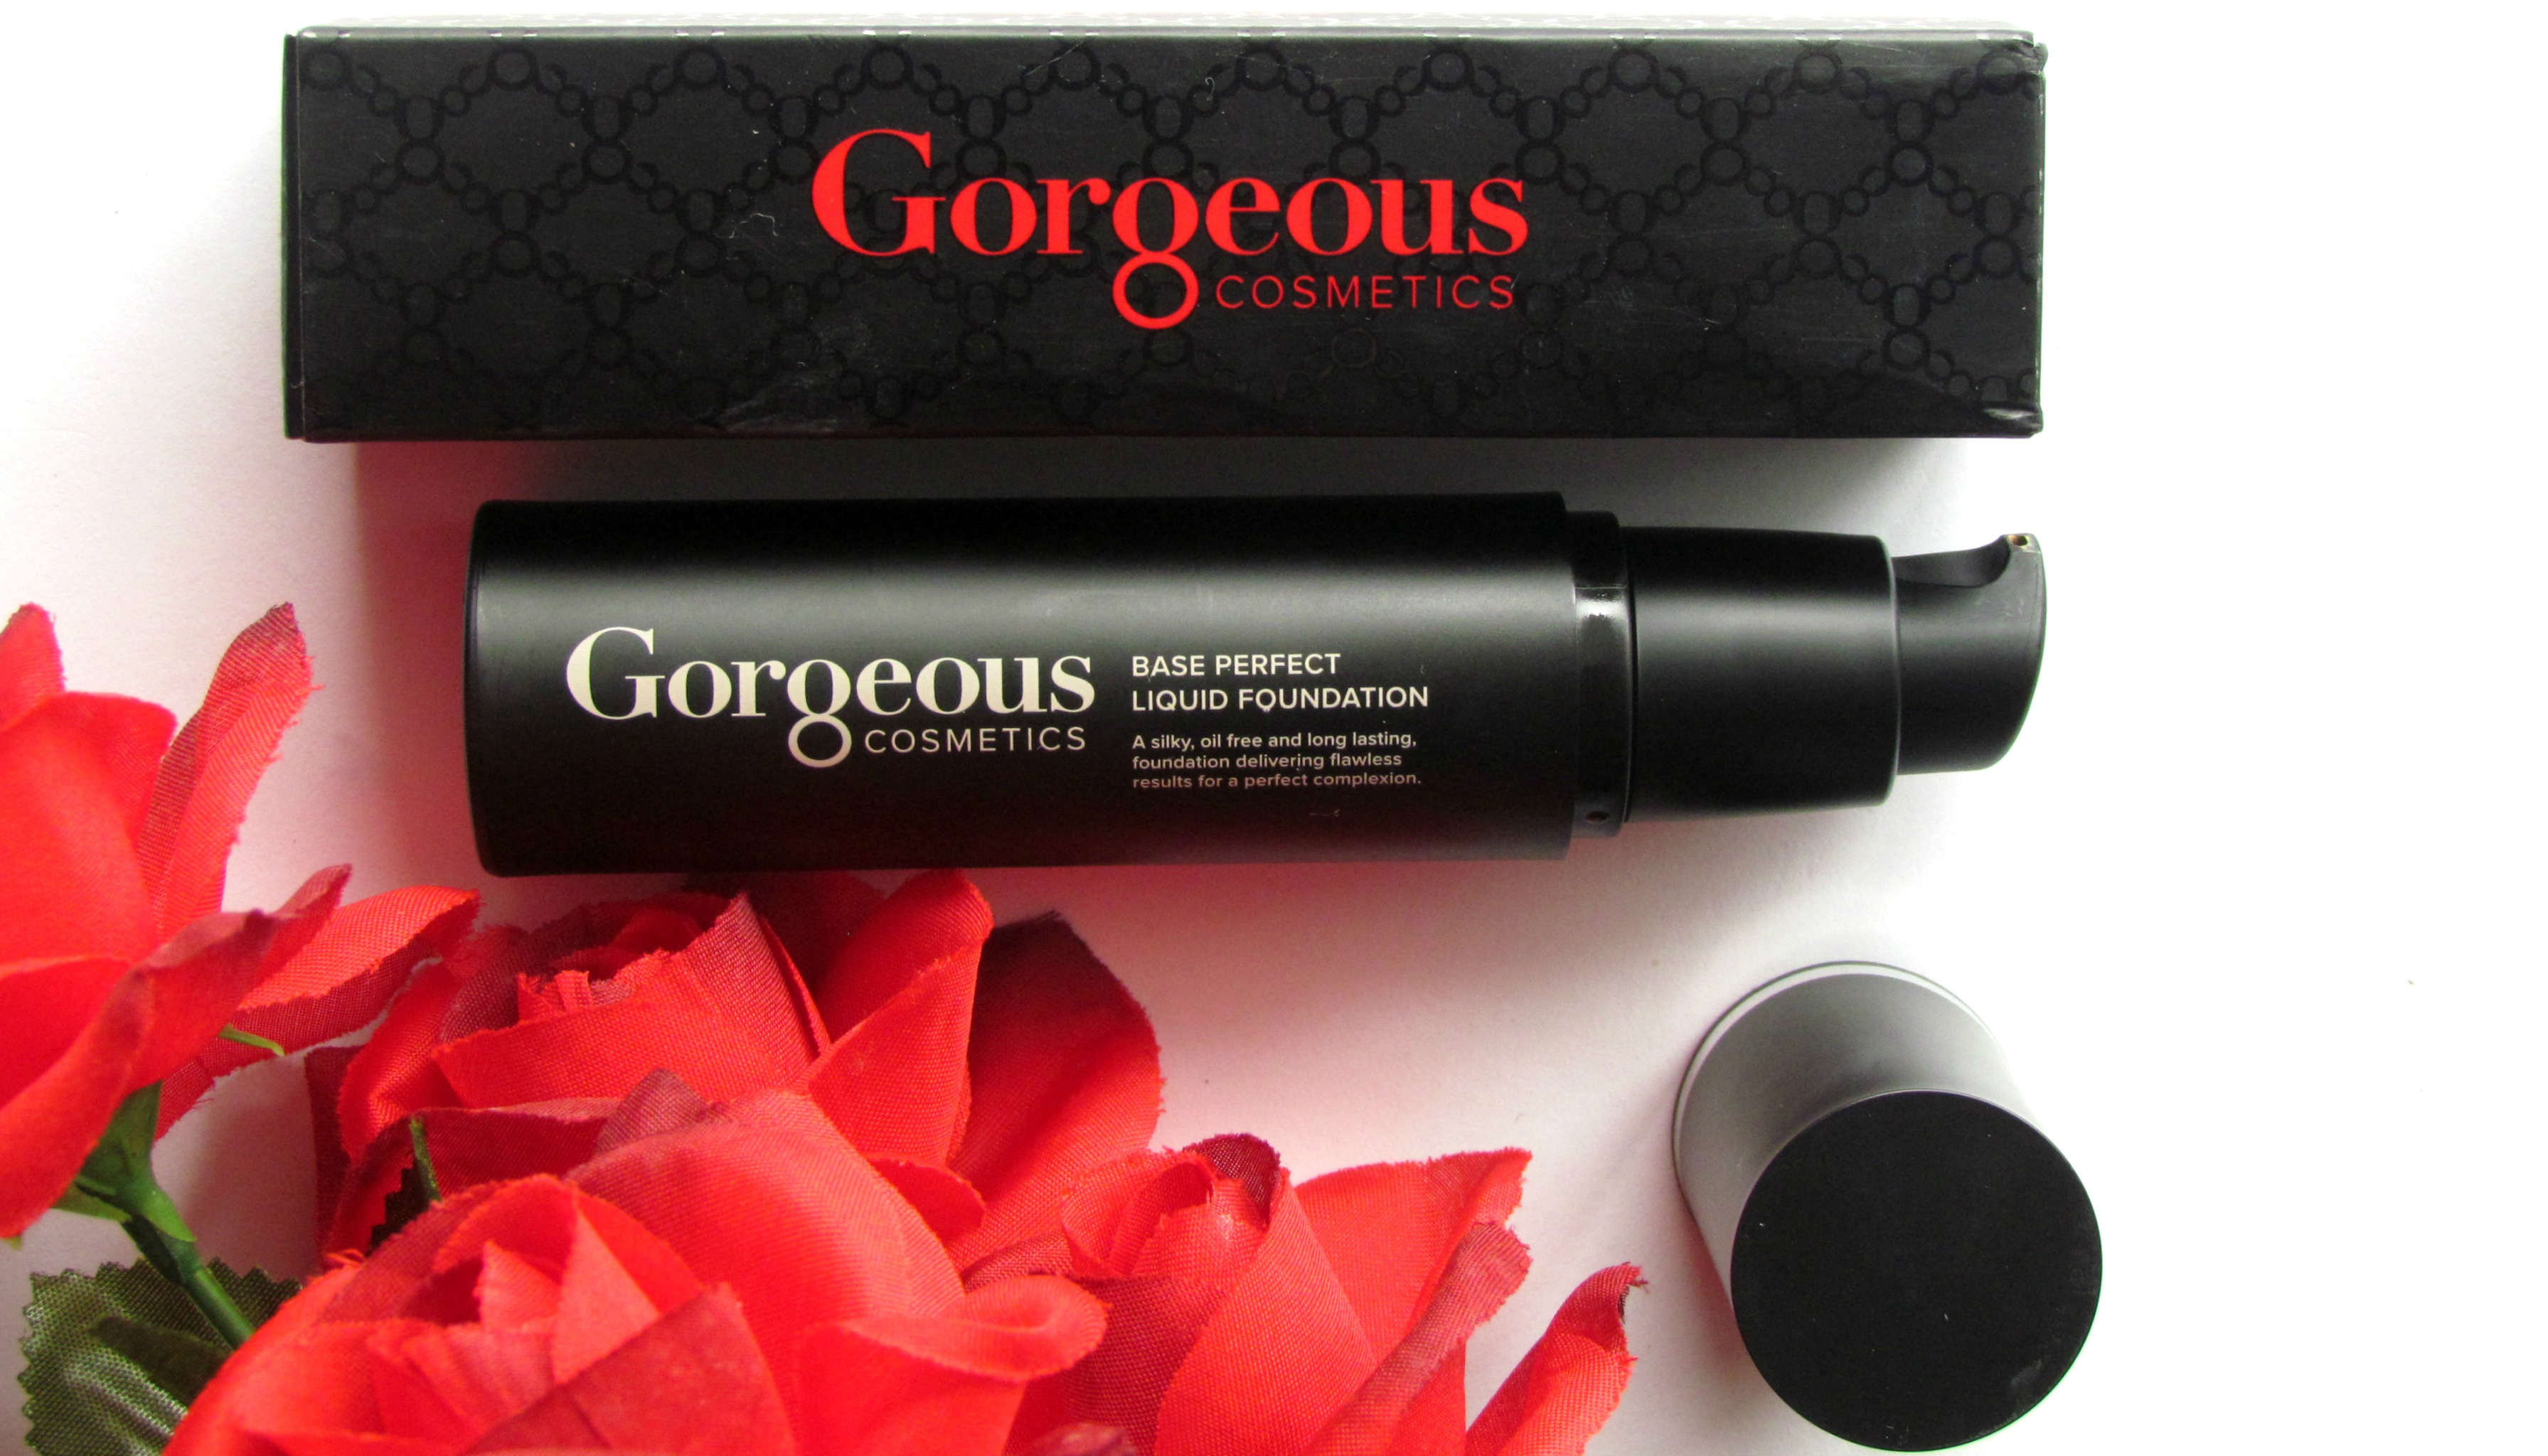 Gorgeous Cosmetics Base Perfect Liquid Foundation & Brush #037 | Review